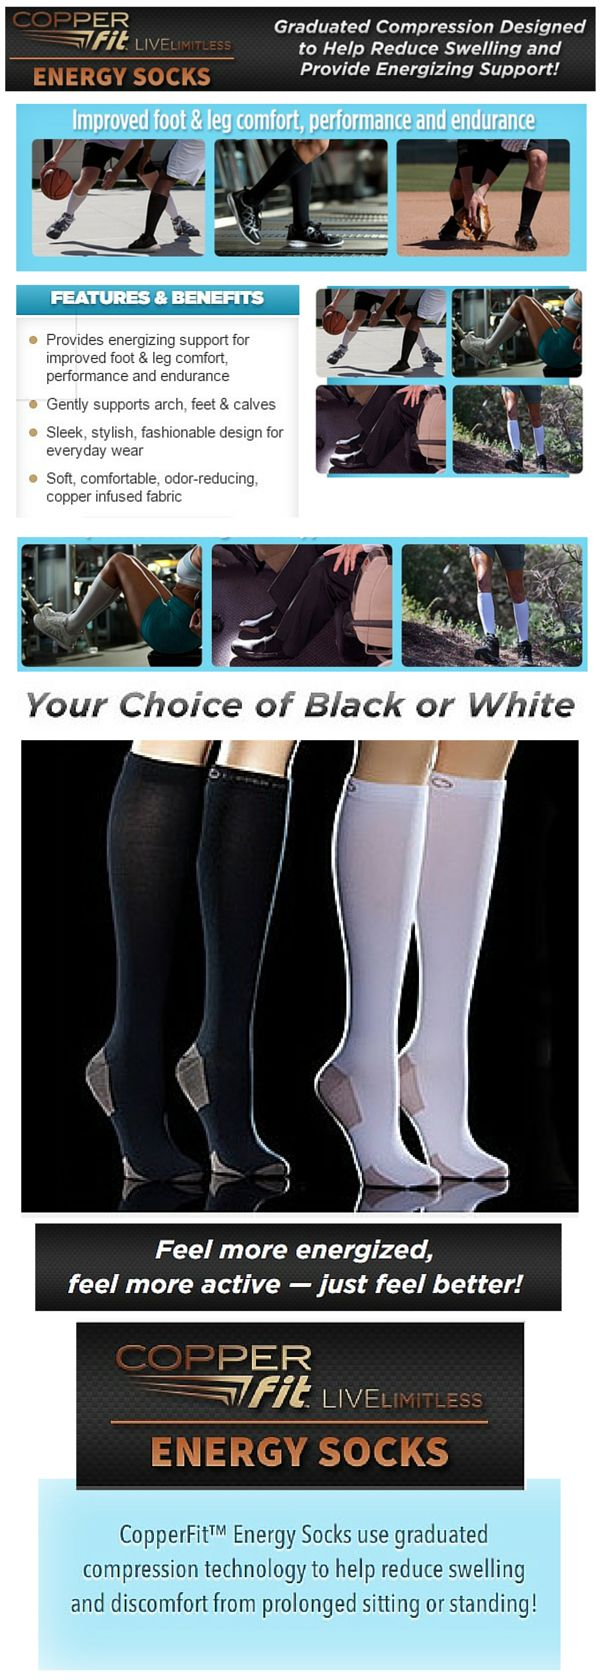 Copper Fit Energy Socks have graduated compression that are designed to help reduce swelling  and provide energizing support! You will feel more energized and active. Copper Fit Energy Socks gently supports your arch, feet, and calves.